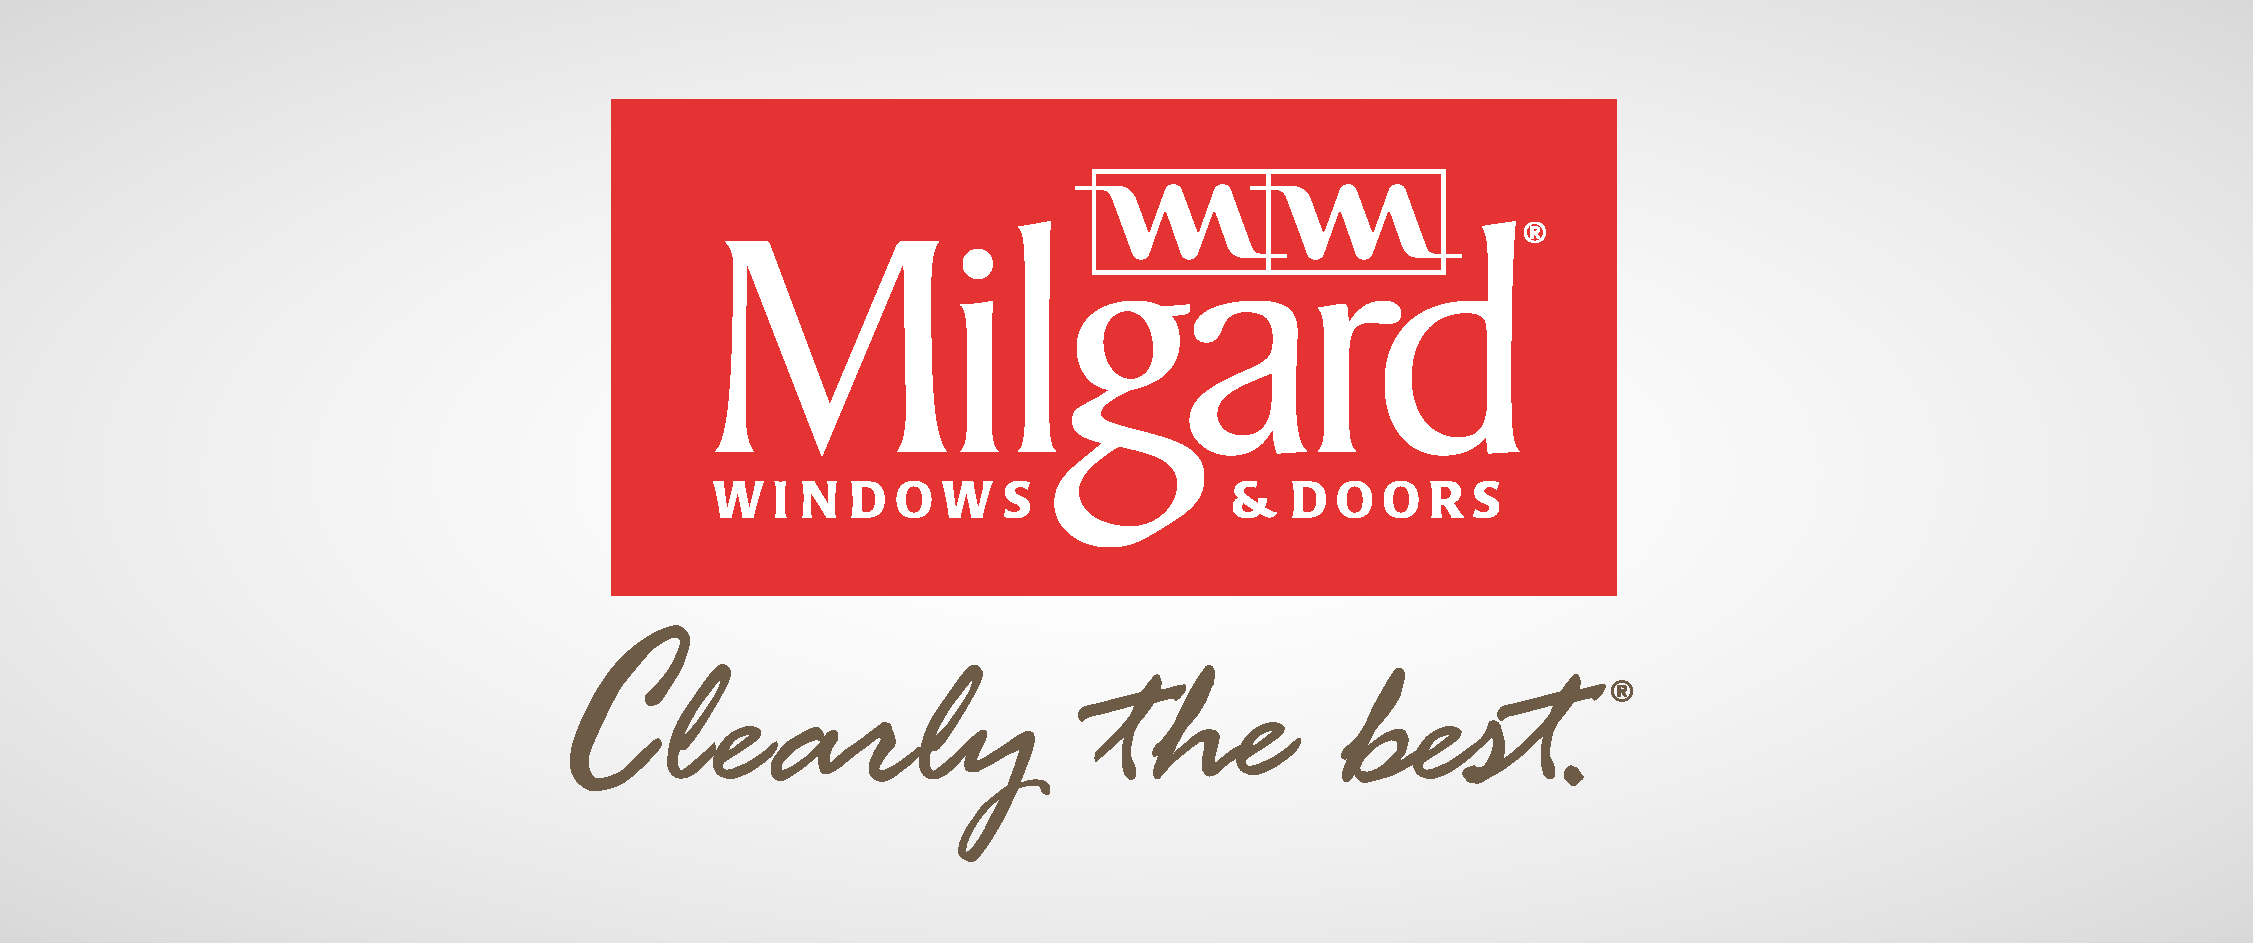 milgard-website-logo.jpg